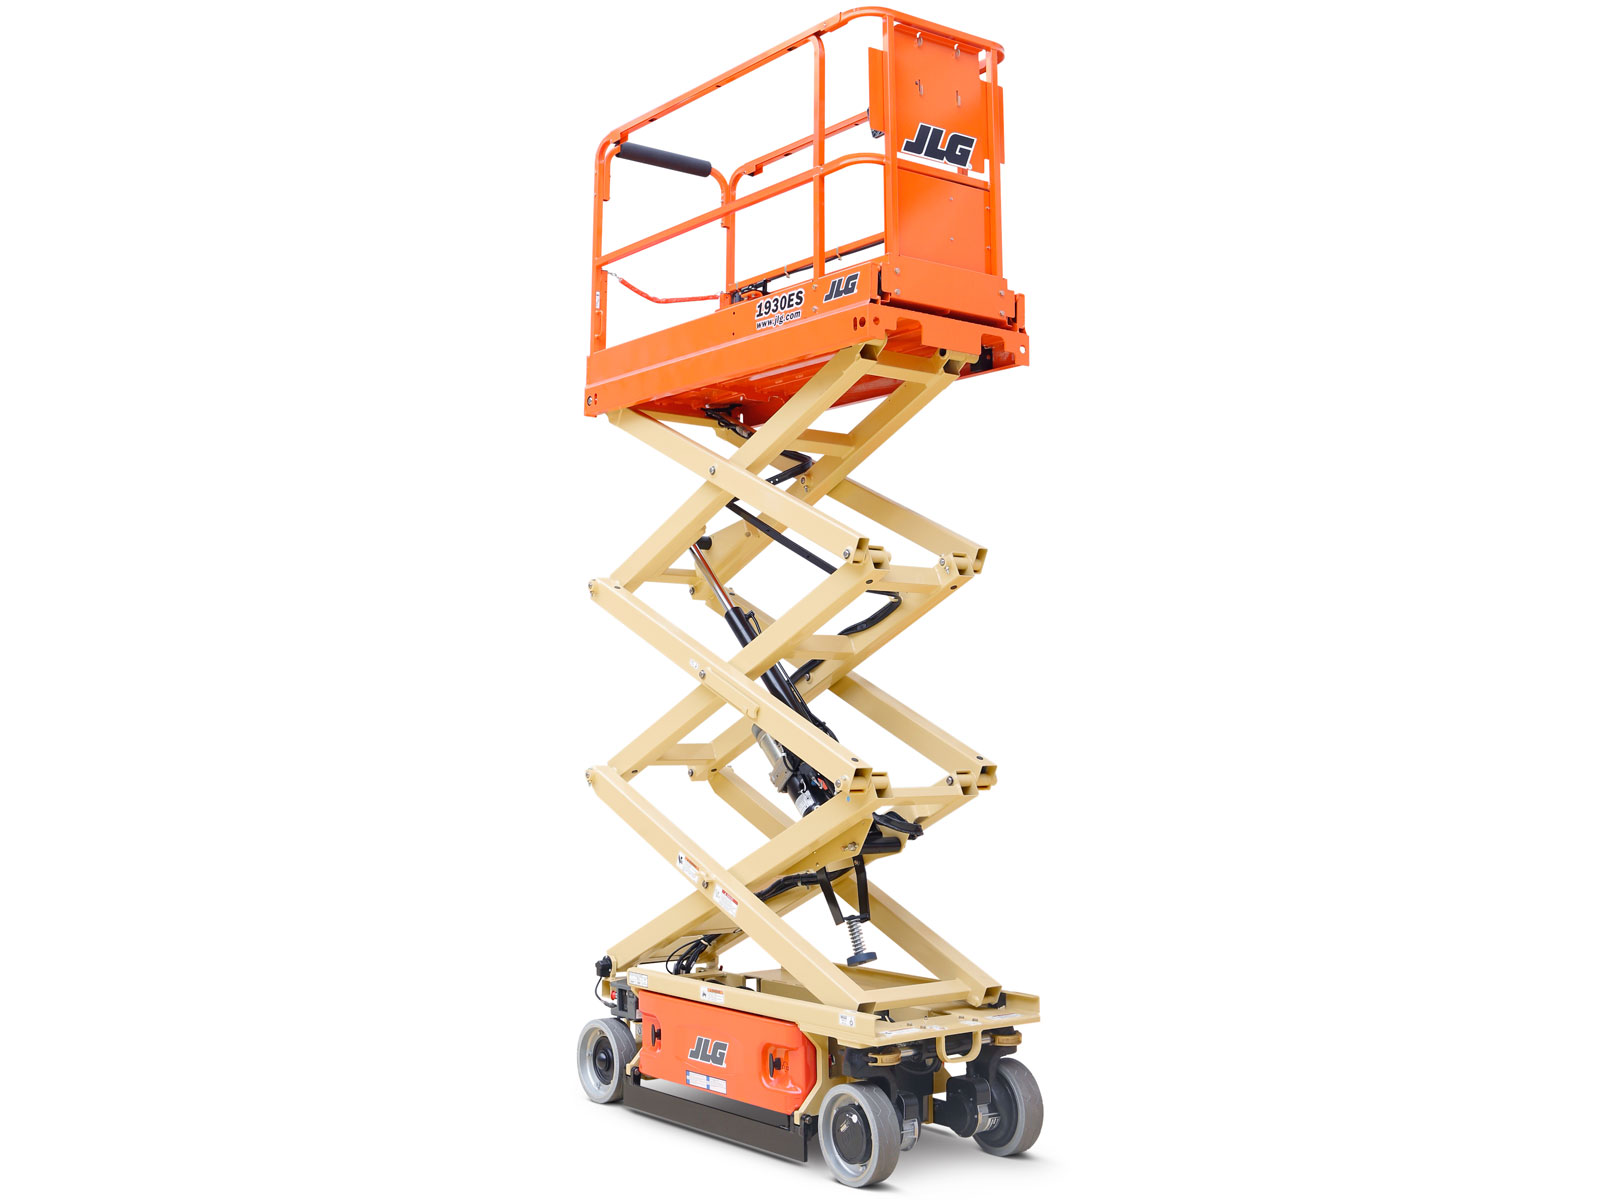 1930es electric scissor lift jlg electric scissor lift